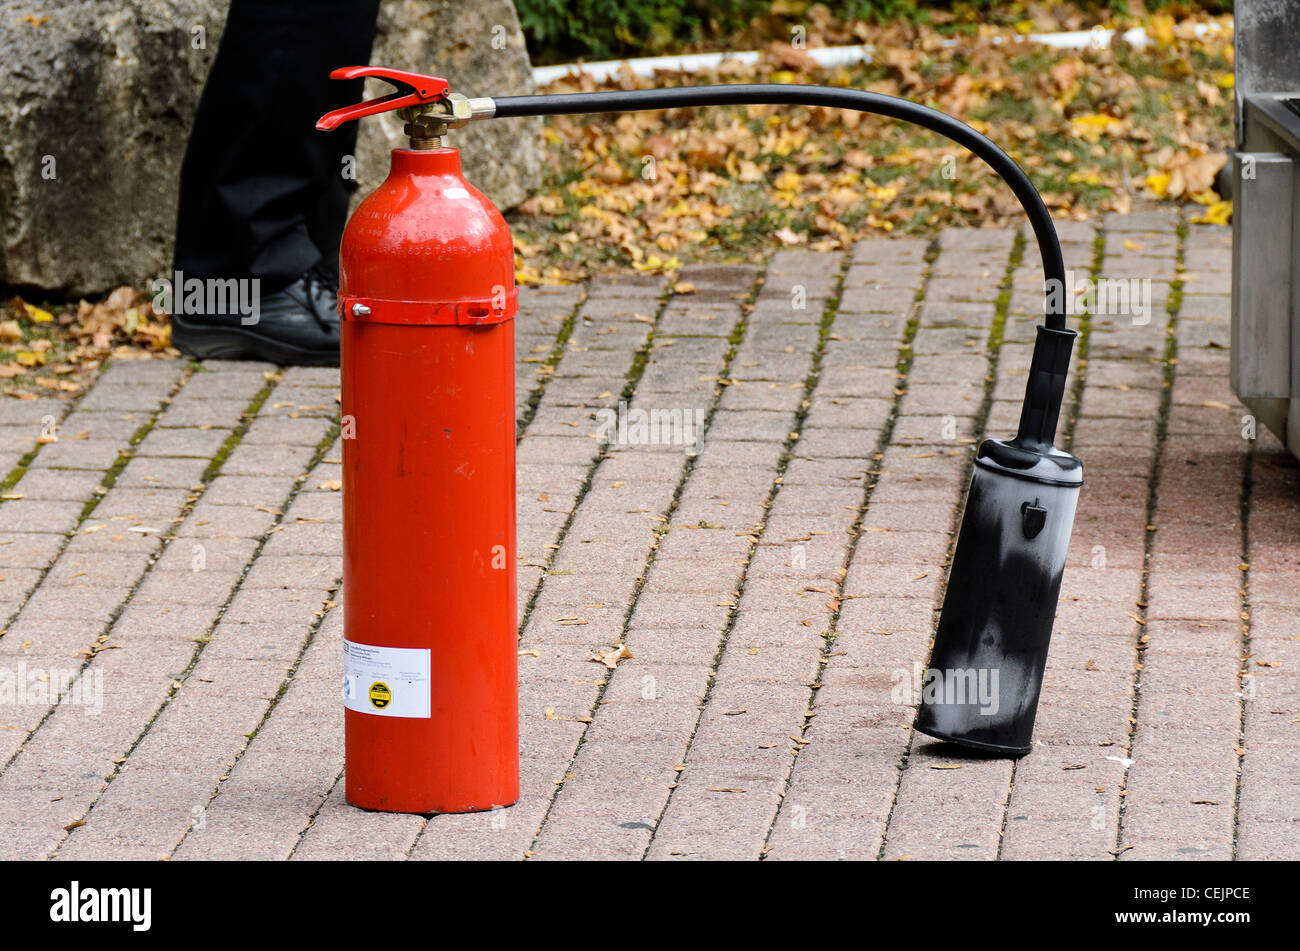 Fire extinguisher used for fire fighting training - Stock Image